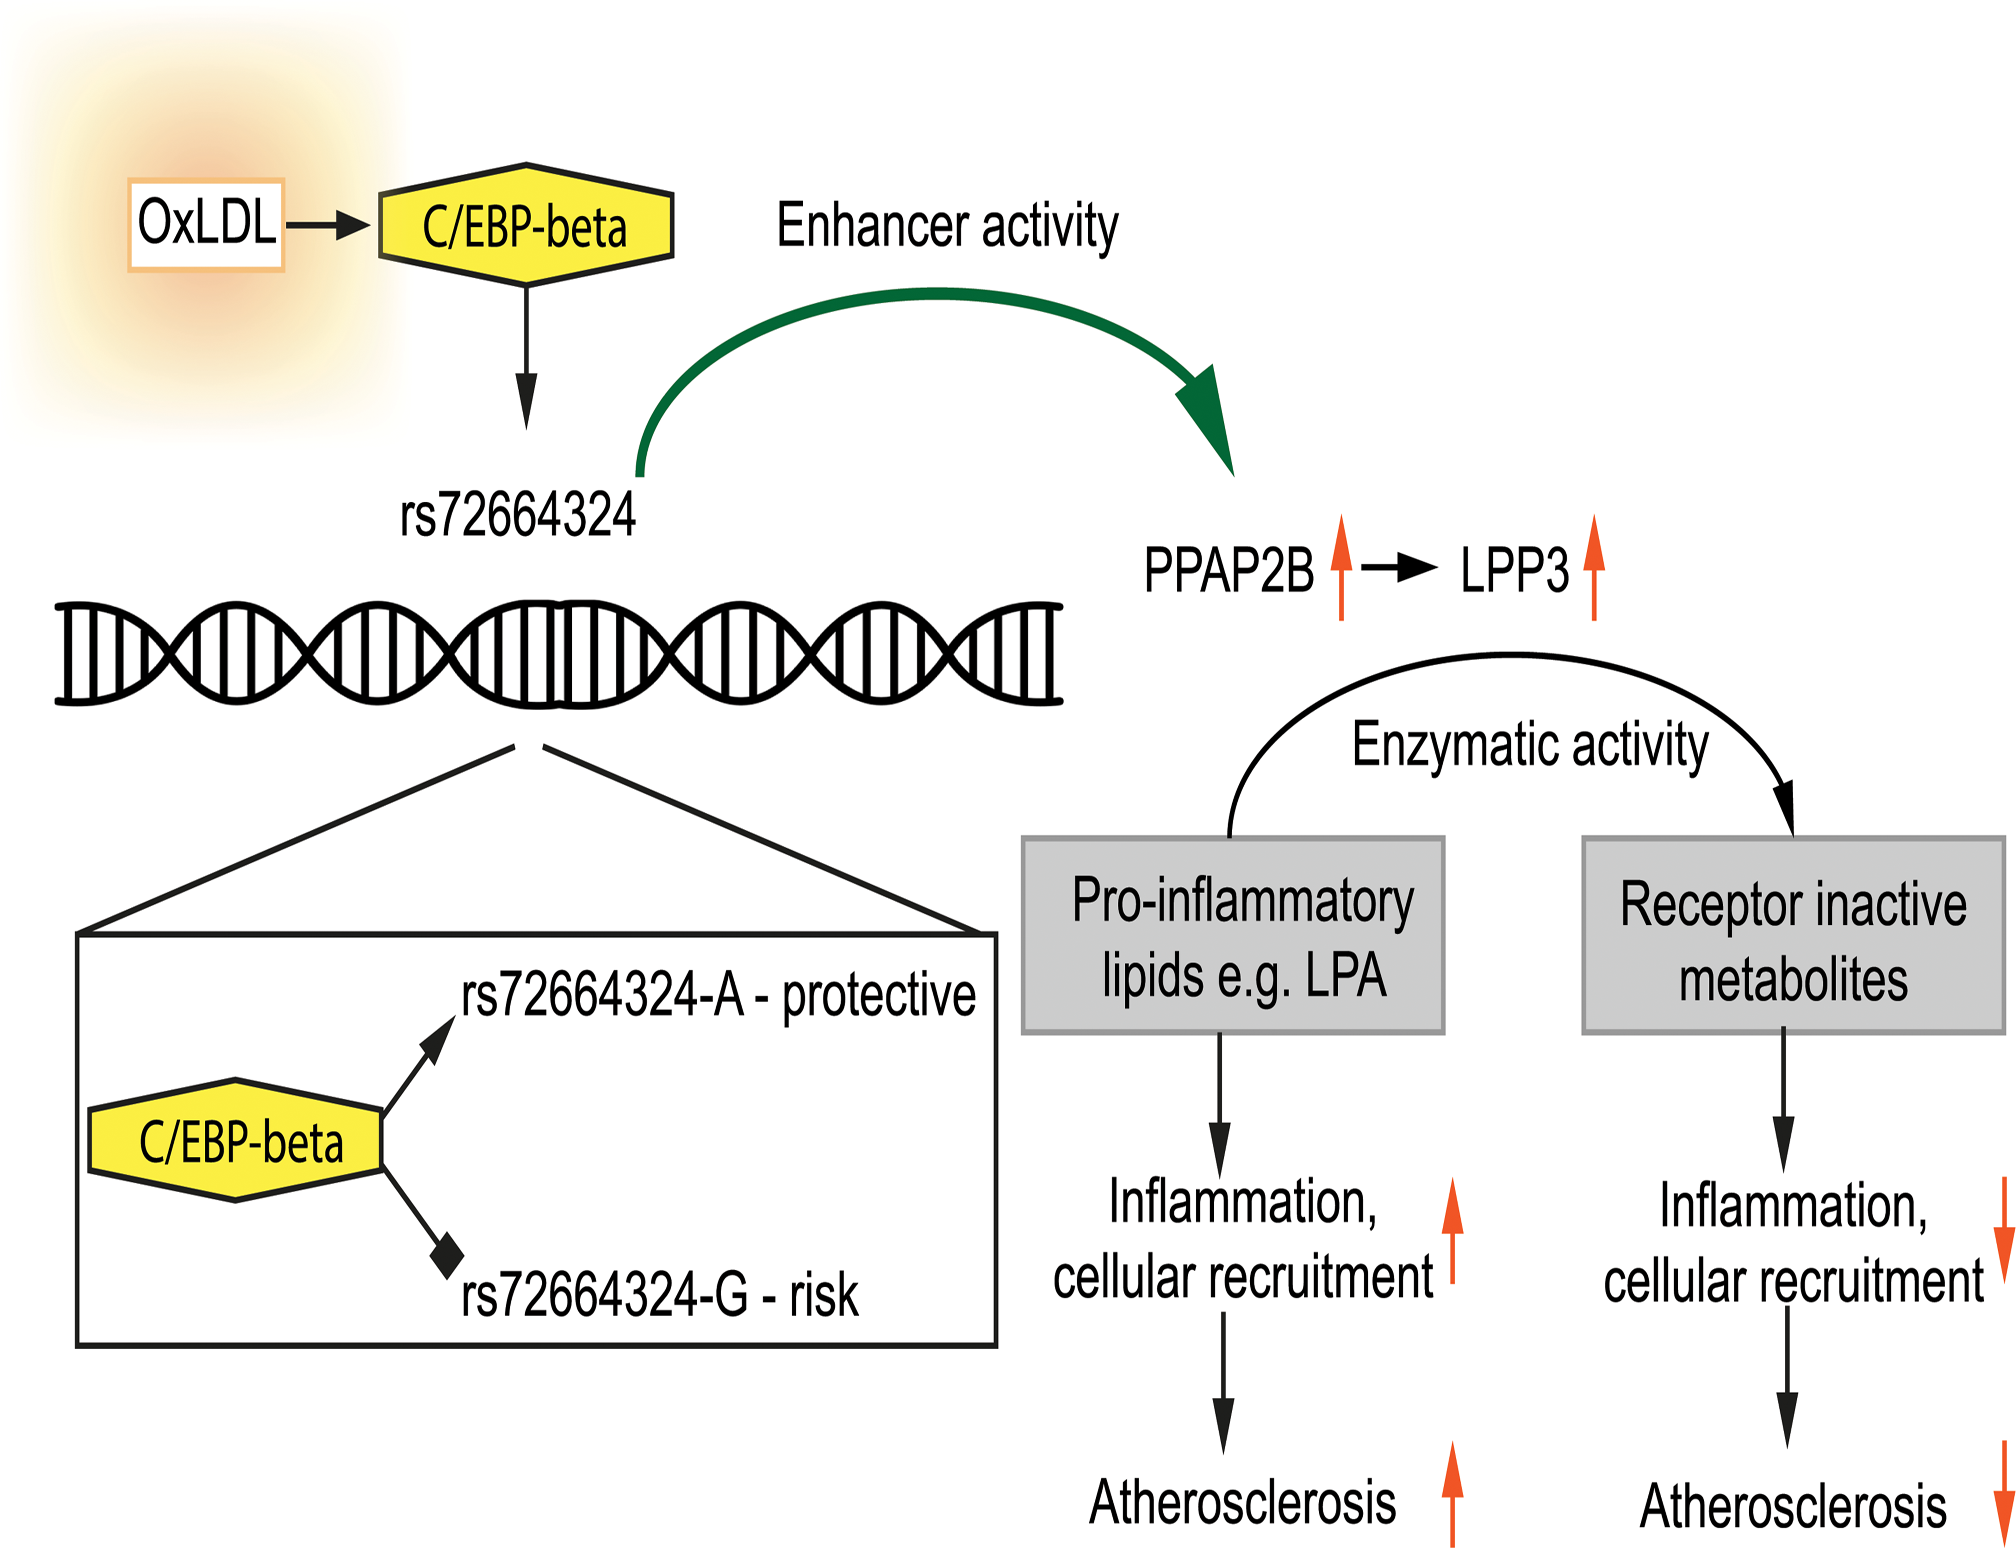 Model showing the interplay between oxLDL, C/EBP beta and rs72664324 on expression of <i>PPAP2B</i>.